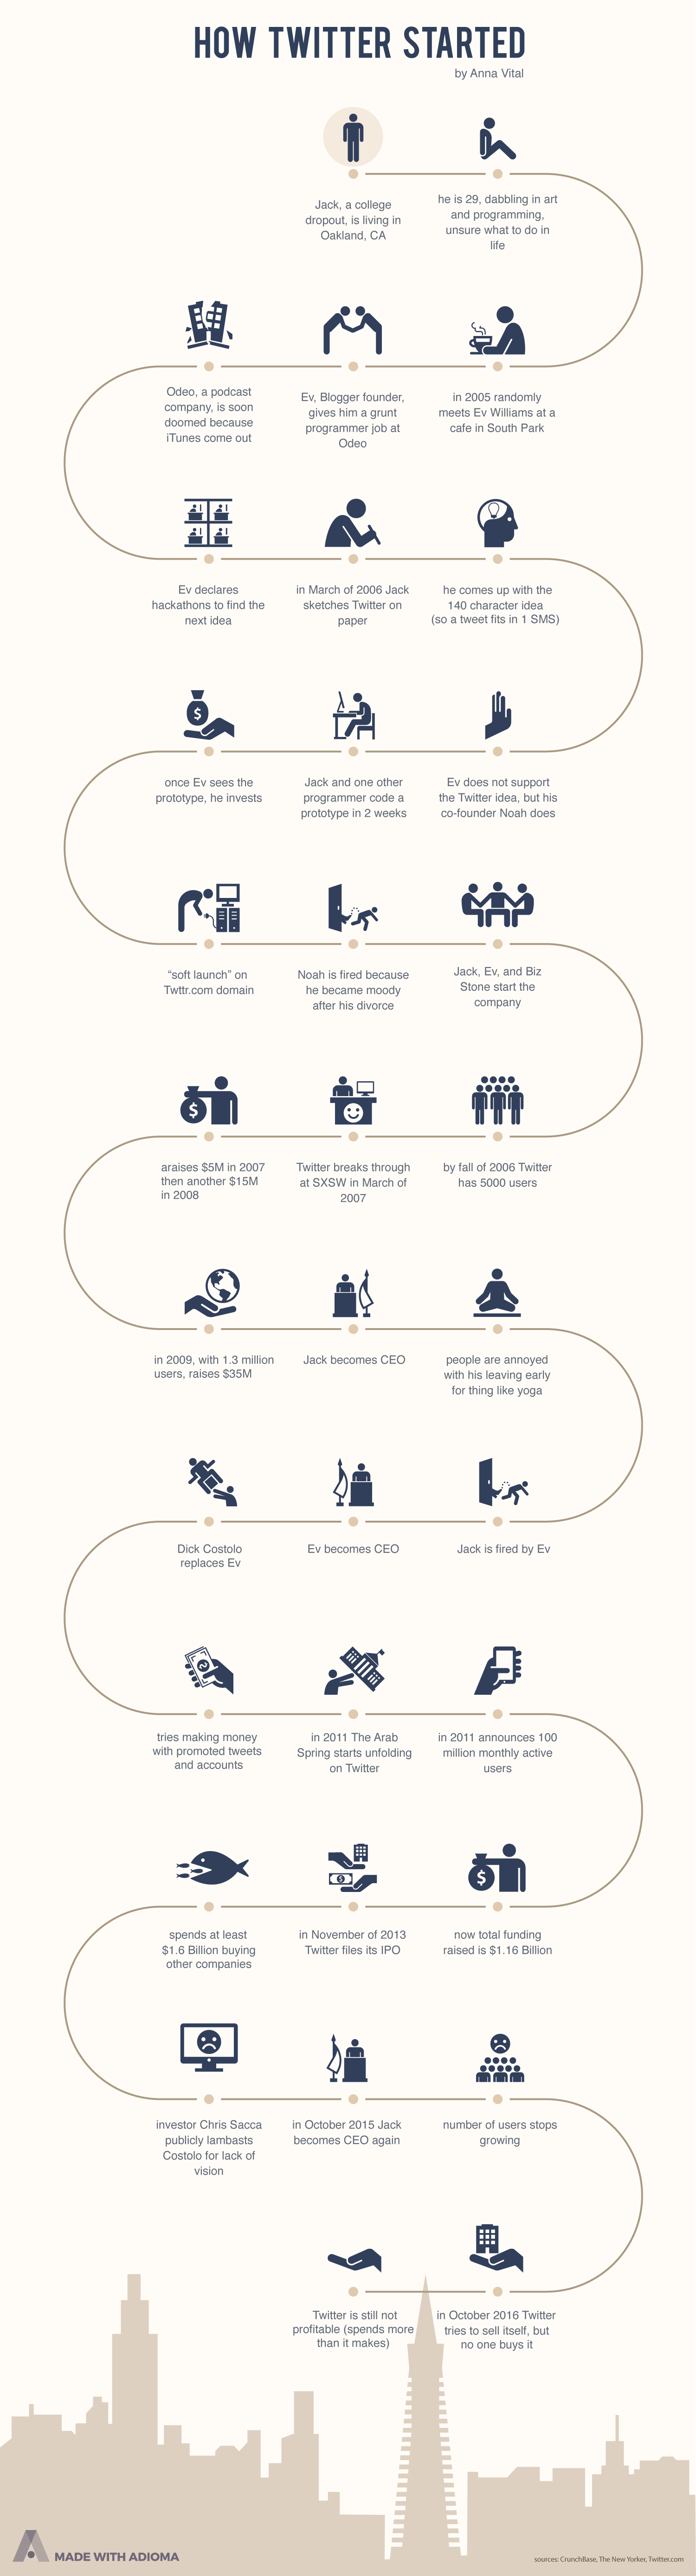 how-twitter-started-infographic